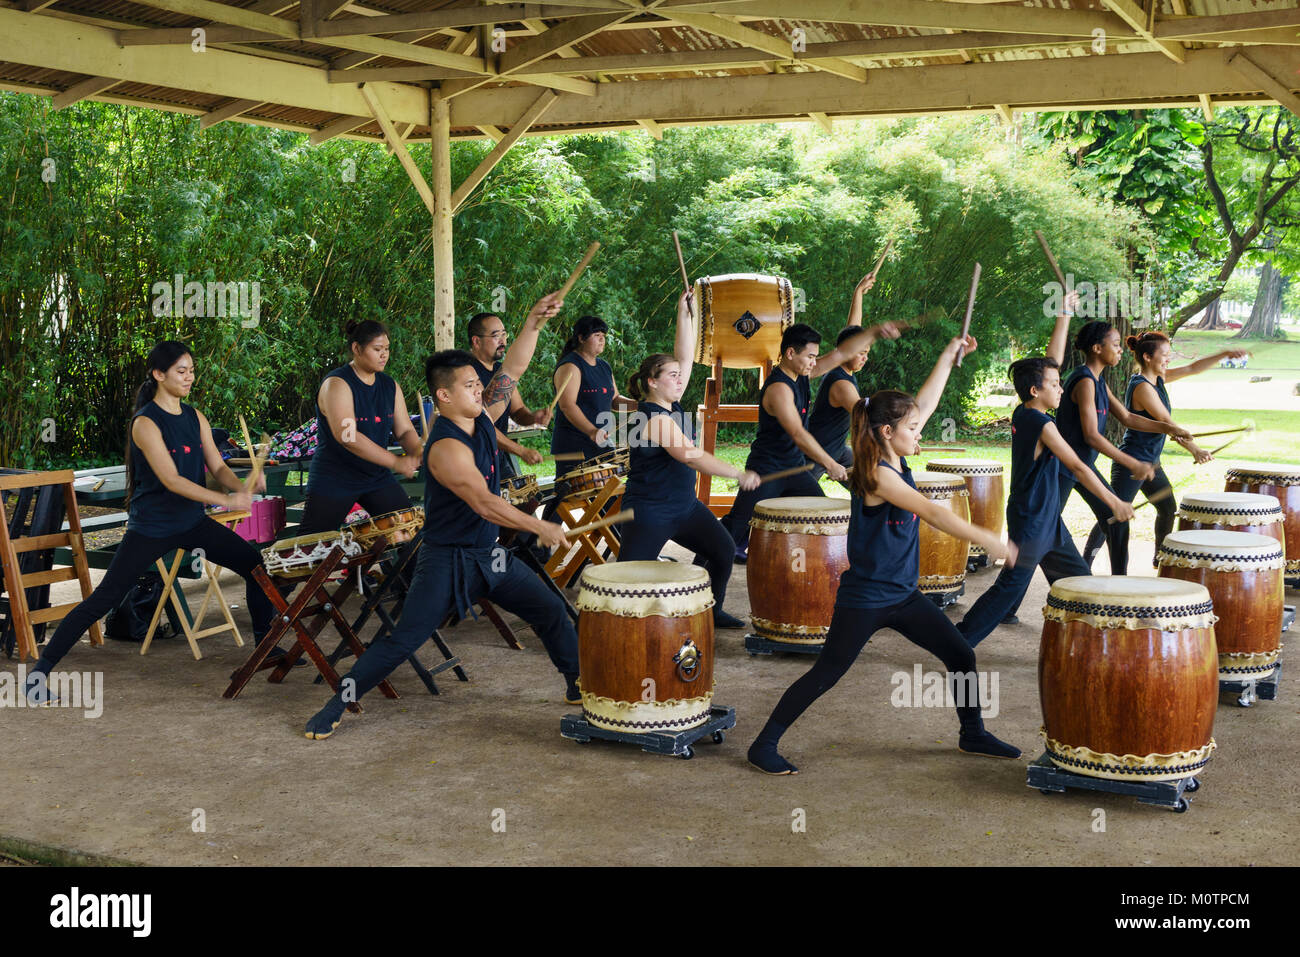 Taiko drummers perform in Lilioukalani Park in Hilo, Hawaii - Stock Image